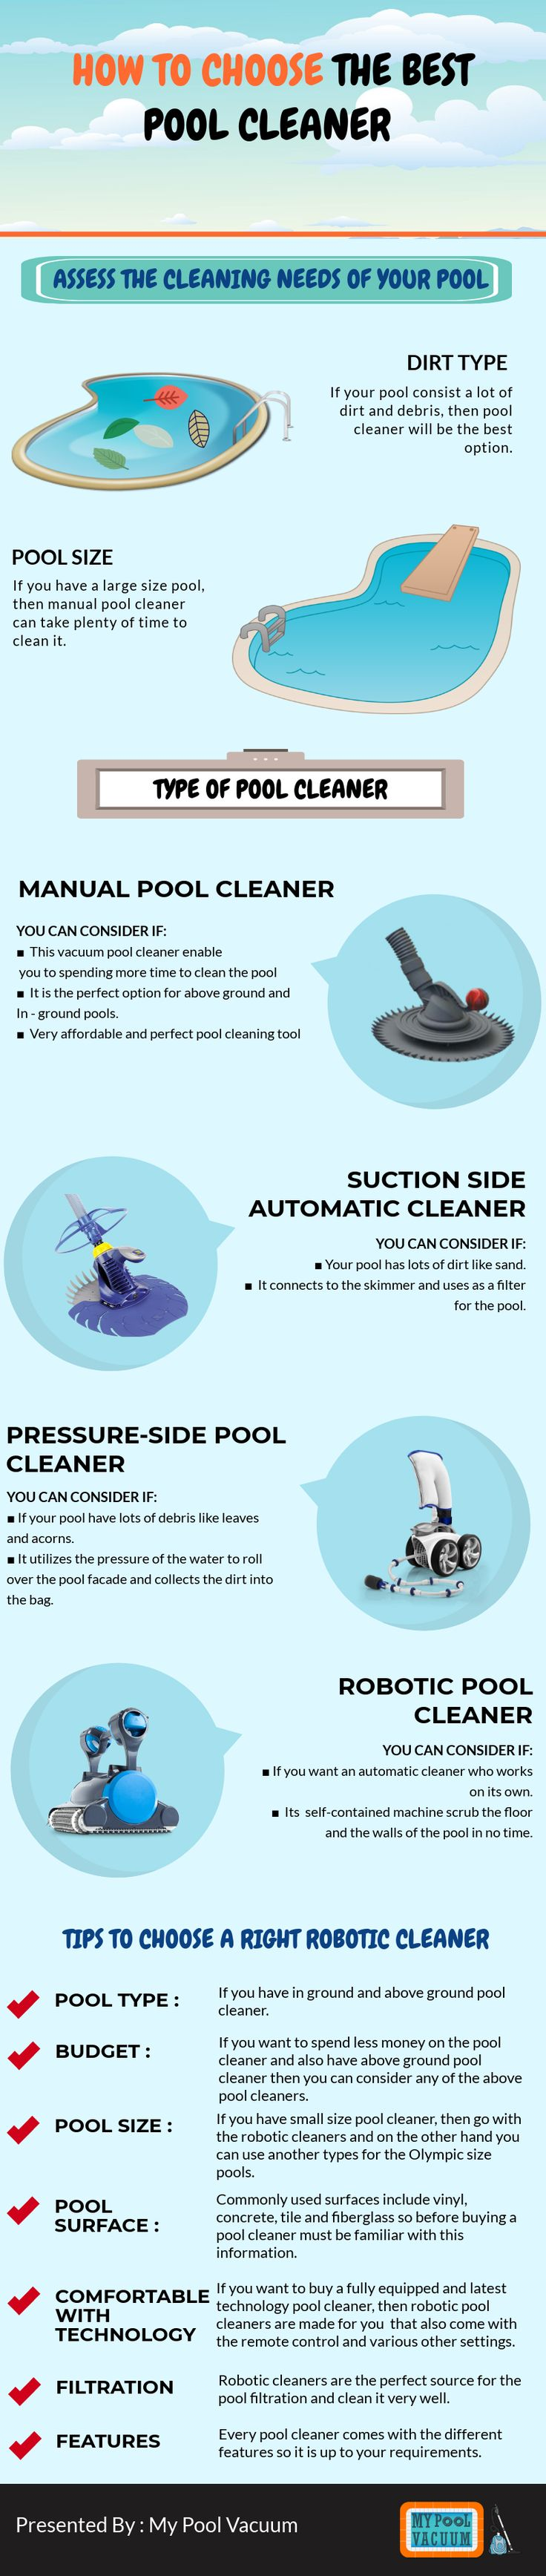 Buying a pool cleaner is not as easy task as you may think. because we have to consider several facts and features while buying it. So today we provide the infographic that includes all the essential information of the pool cleaner including types and features of the pool cleaner and how you can choose the best pool vacuum cleaner for your pool. So, check it out now!